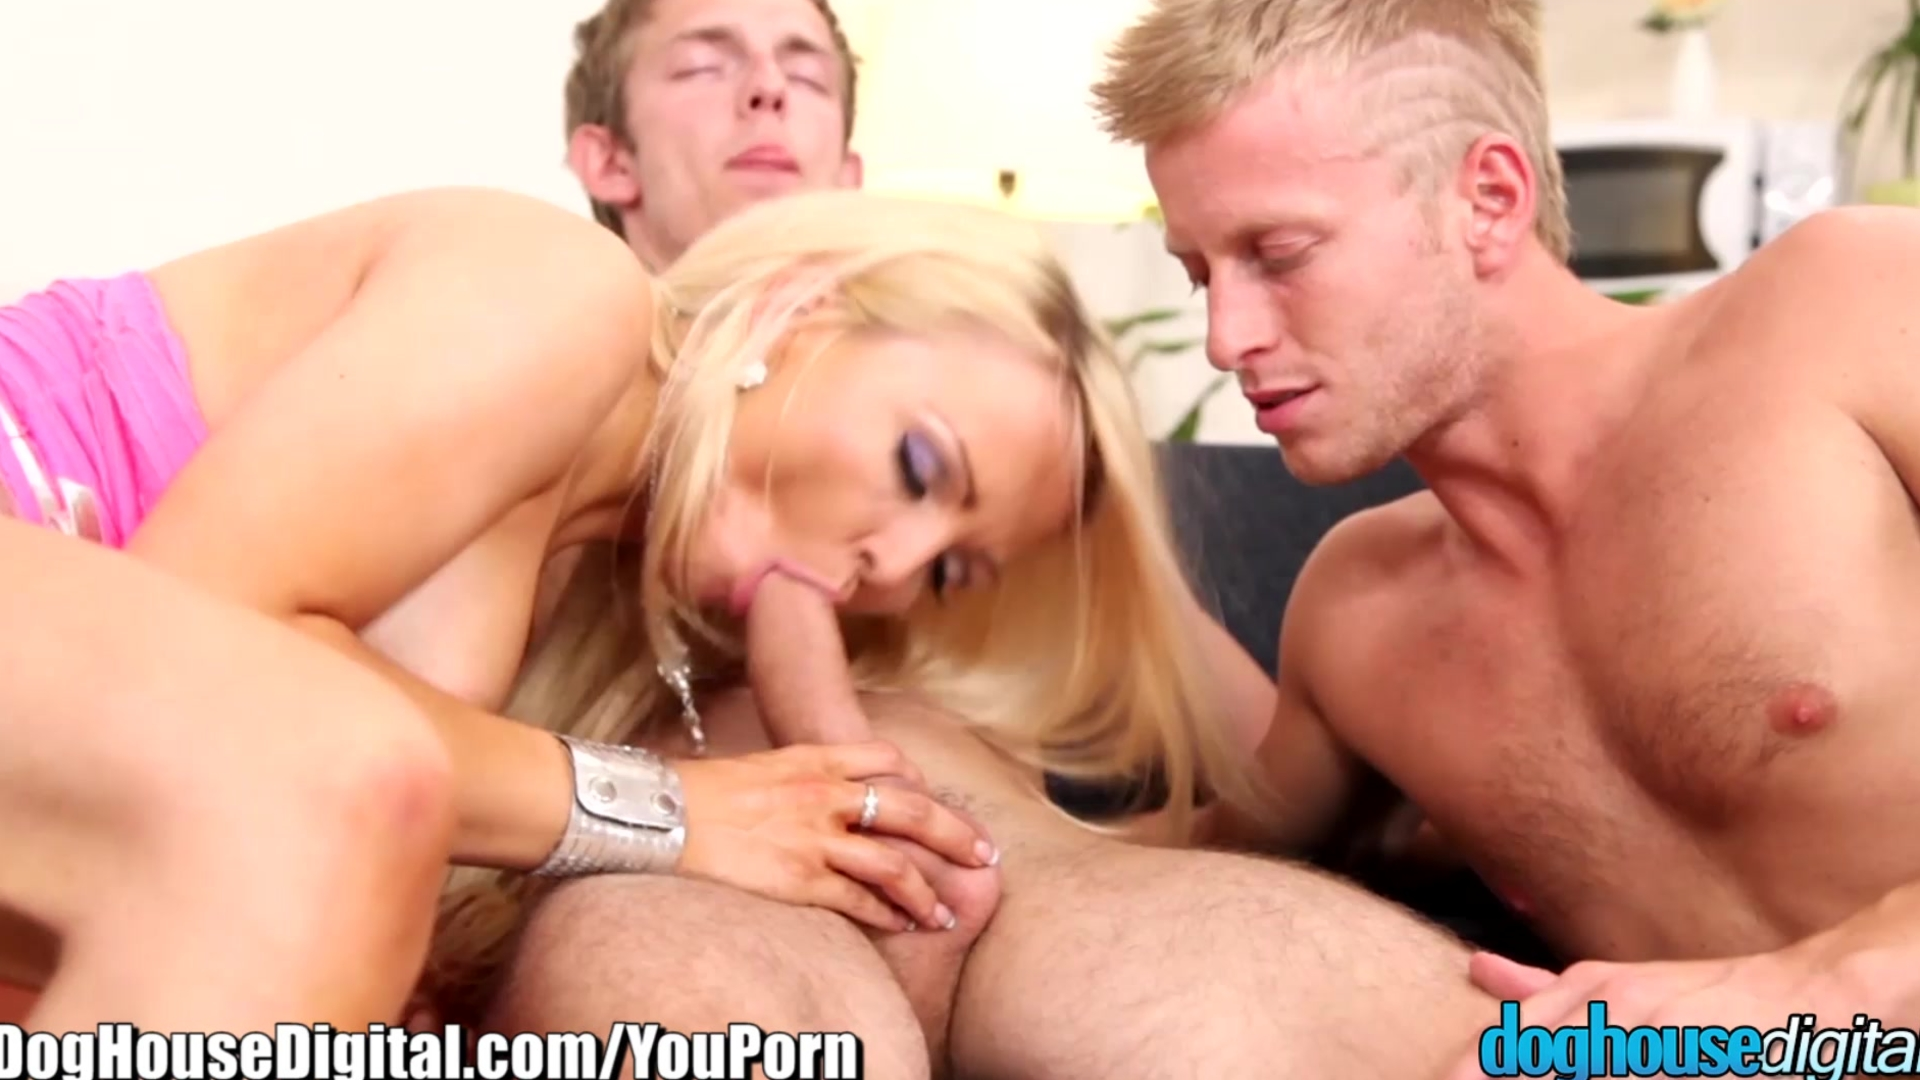 bisexual free mmf video